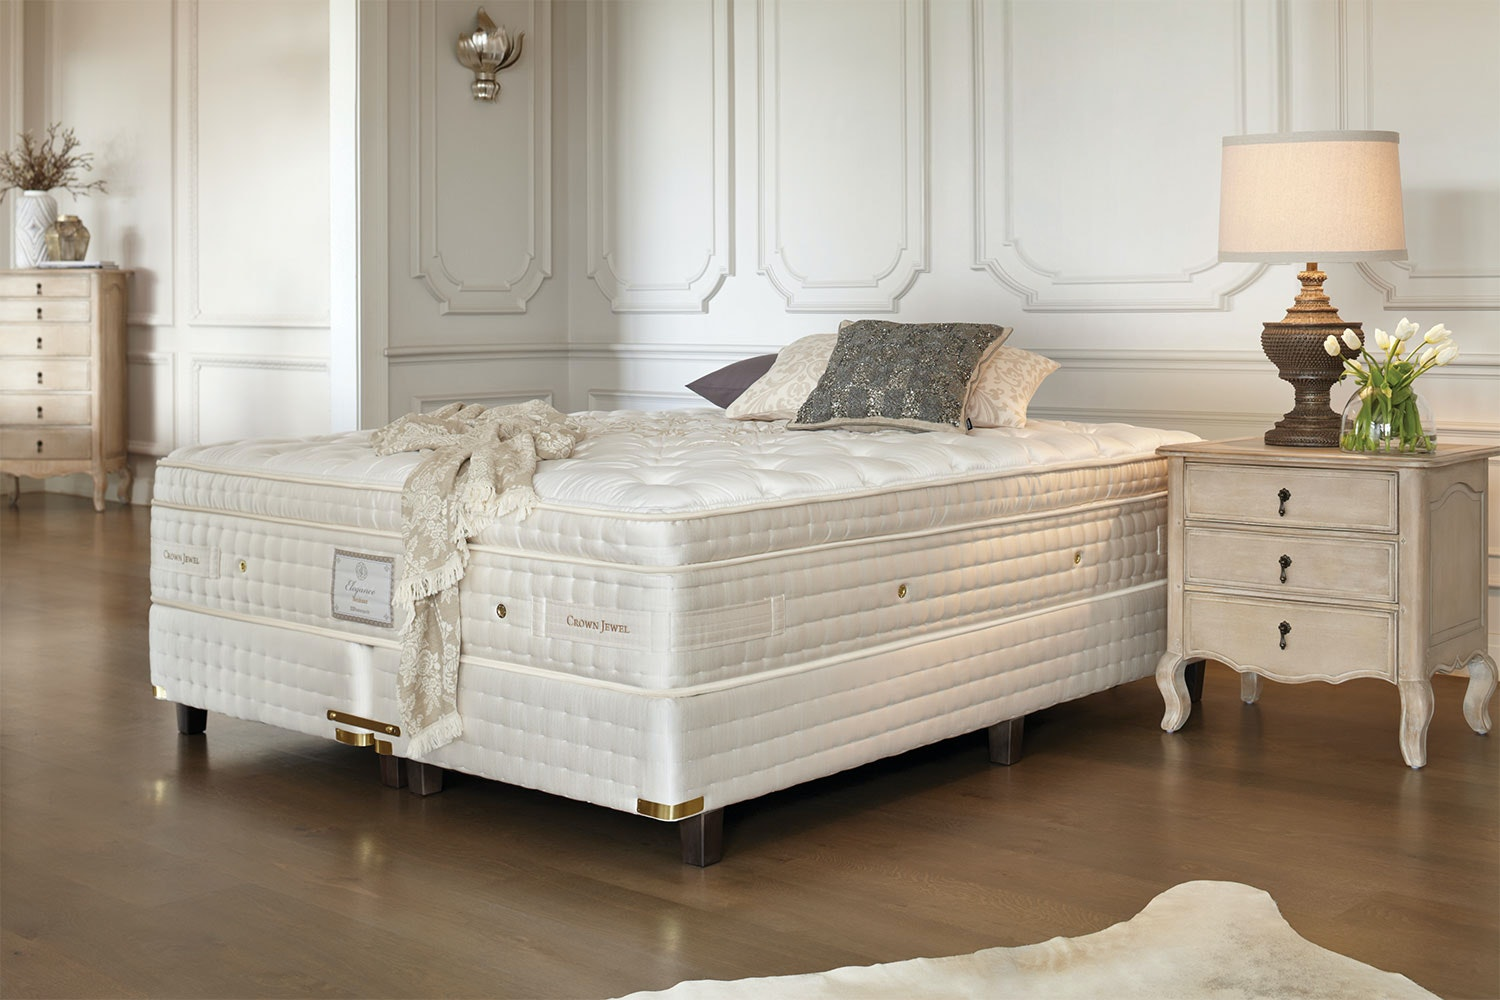 Bordeaux Plush King Bed by Crown Jewel